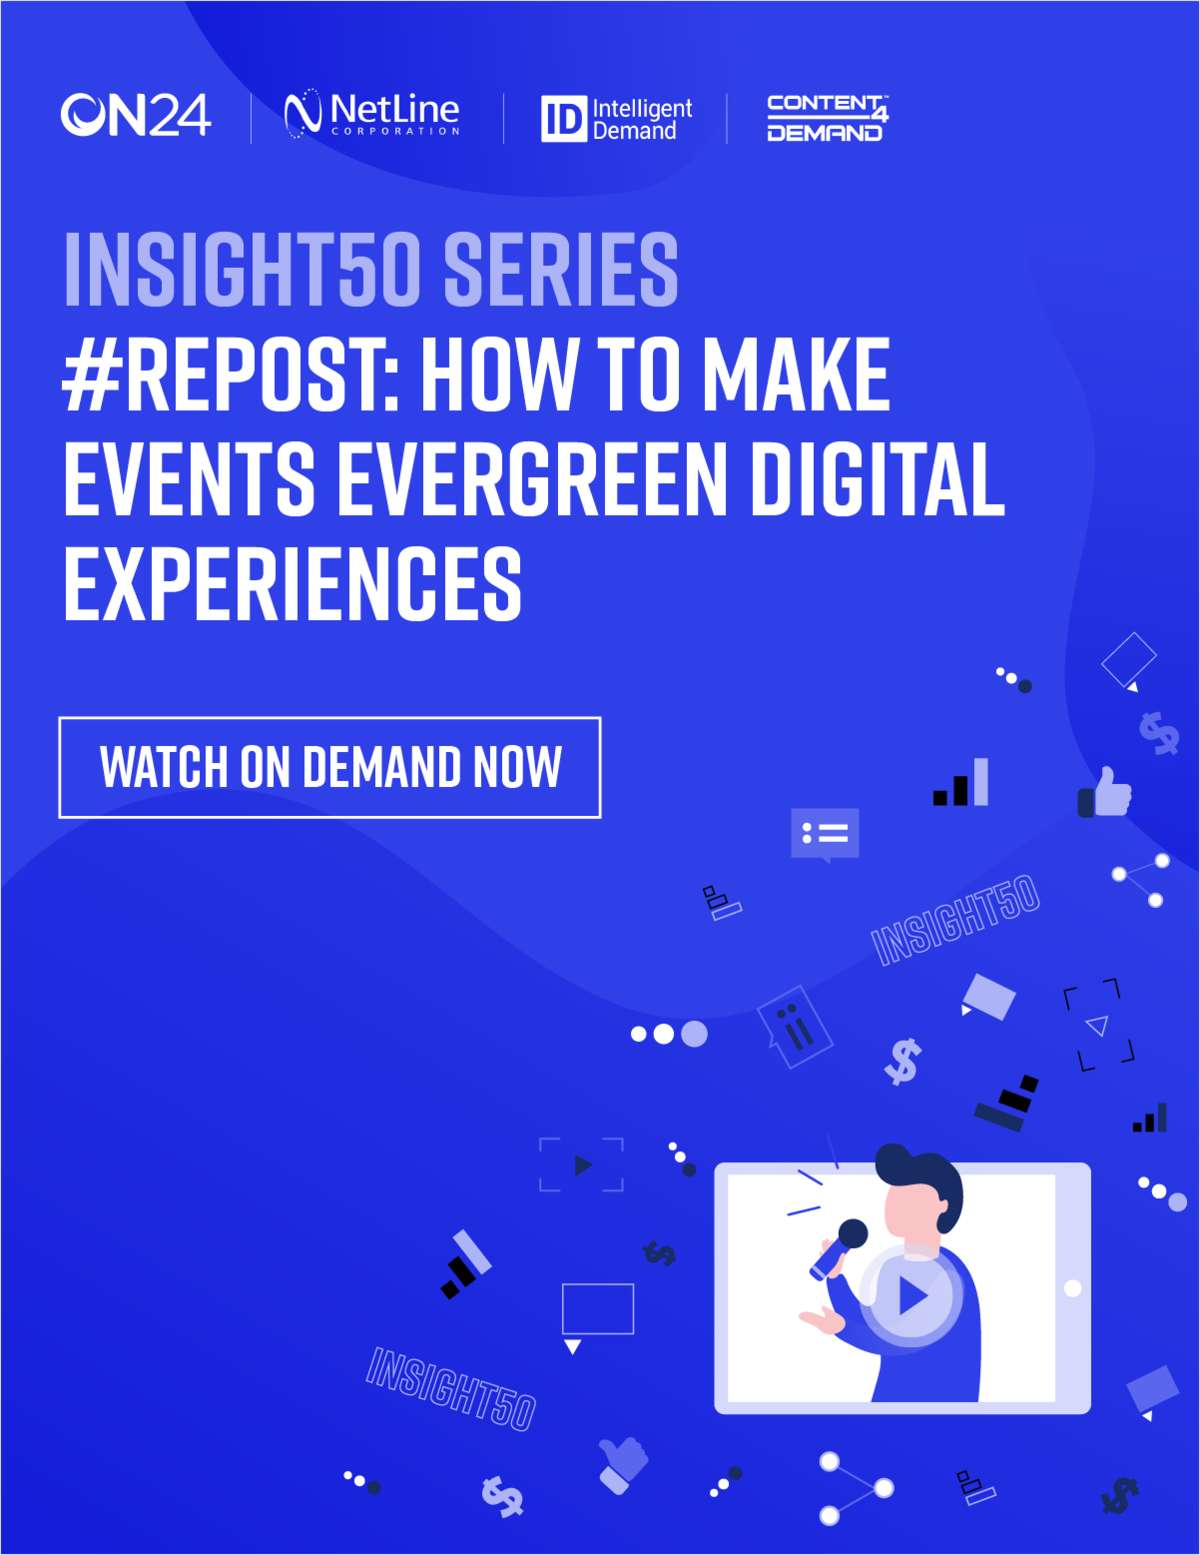 #Repost: How to Make Events Evergreen Digital Experiences